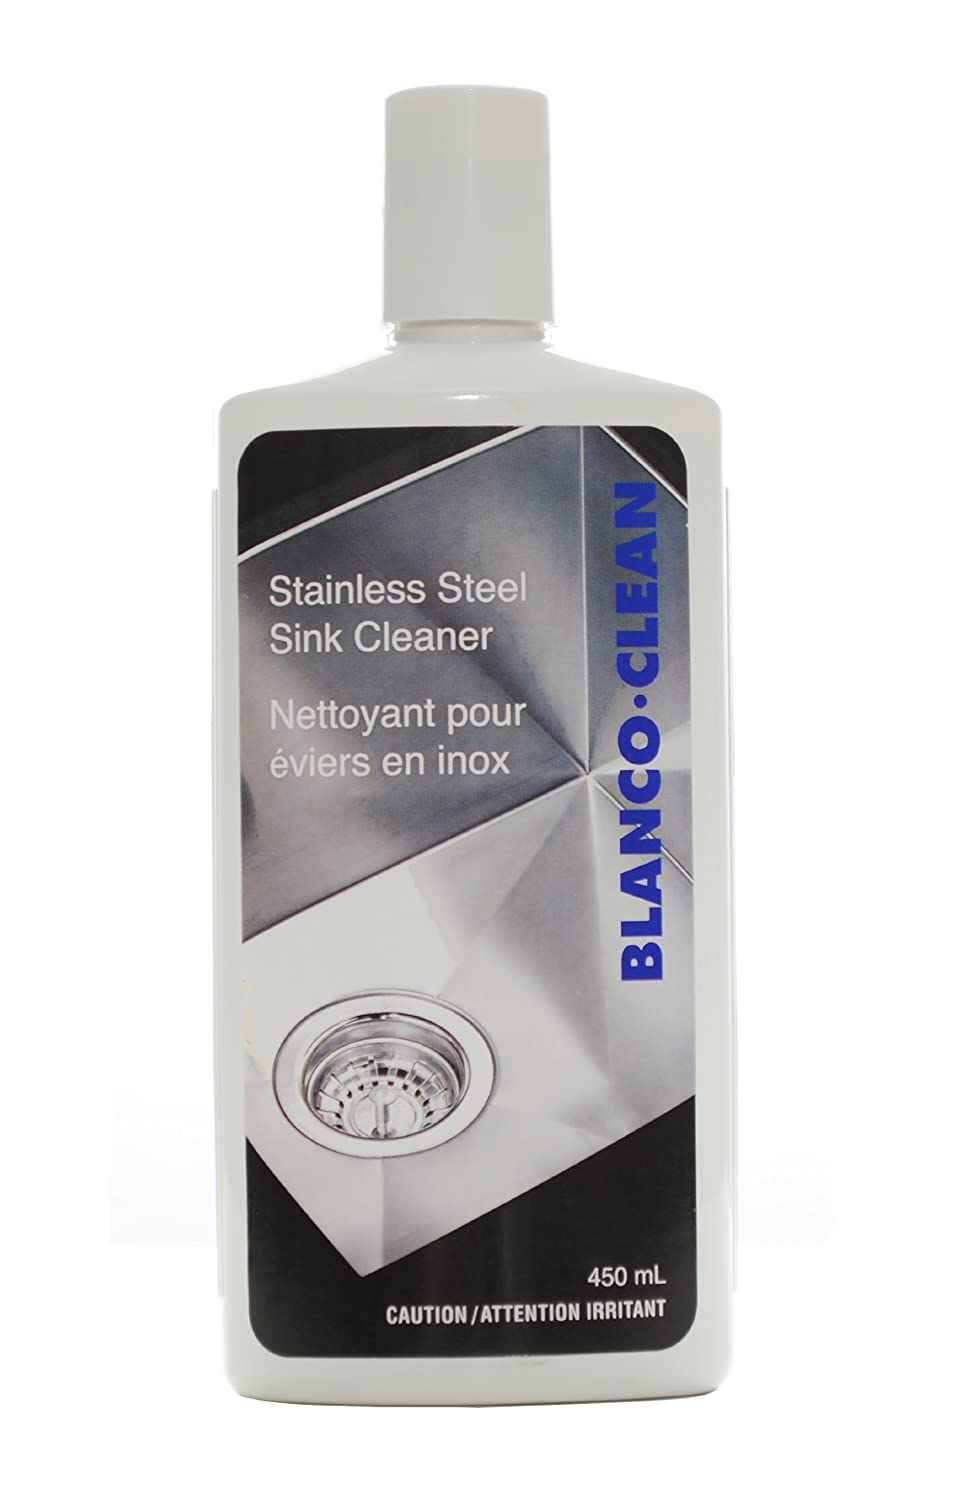 Superieur Blanco 406214 Blanco Stainless Sink Cleaner   Sink Strainers   Amazon.com